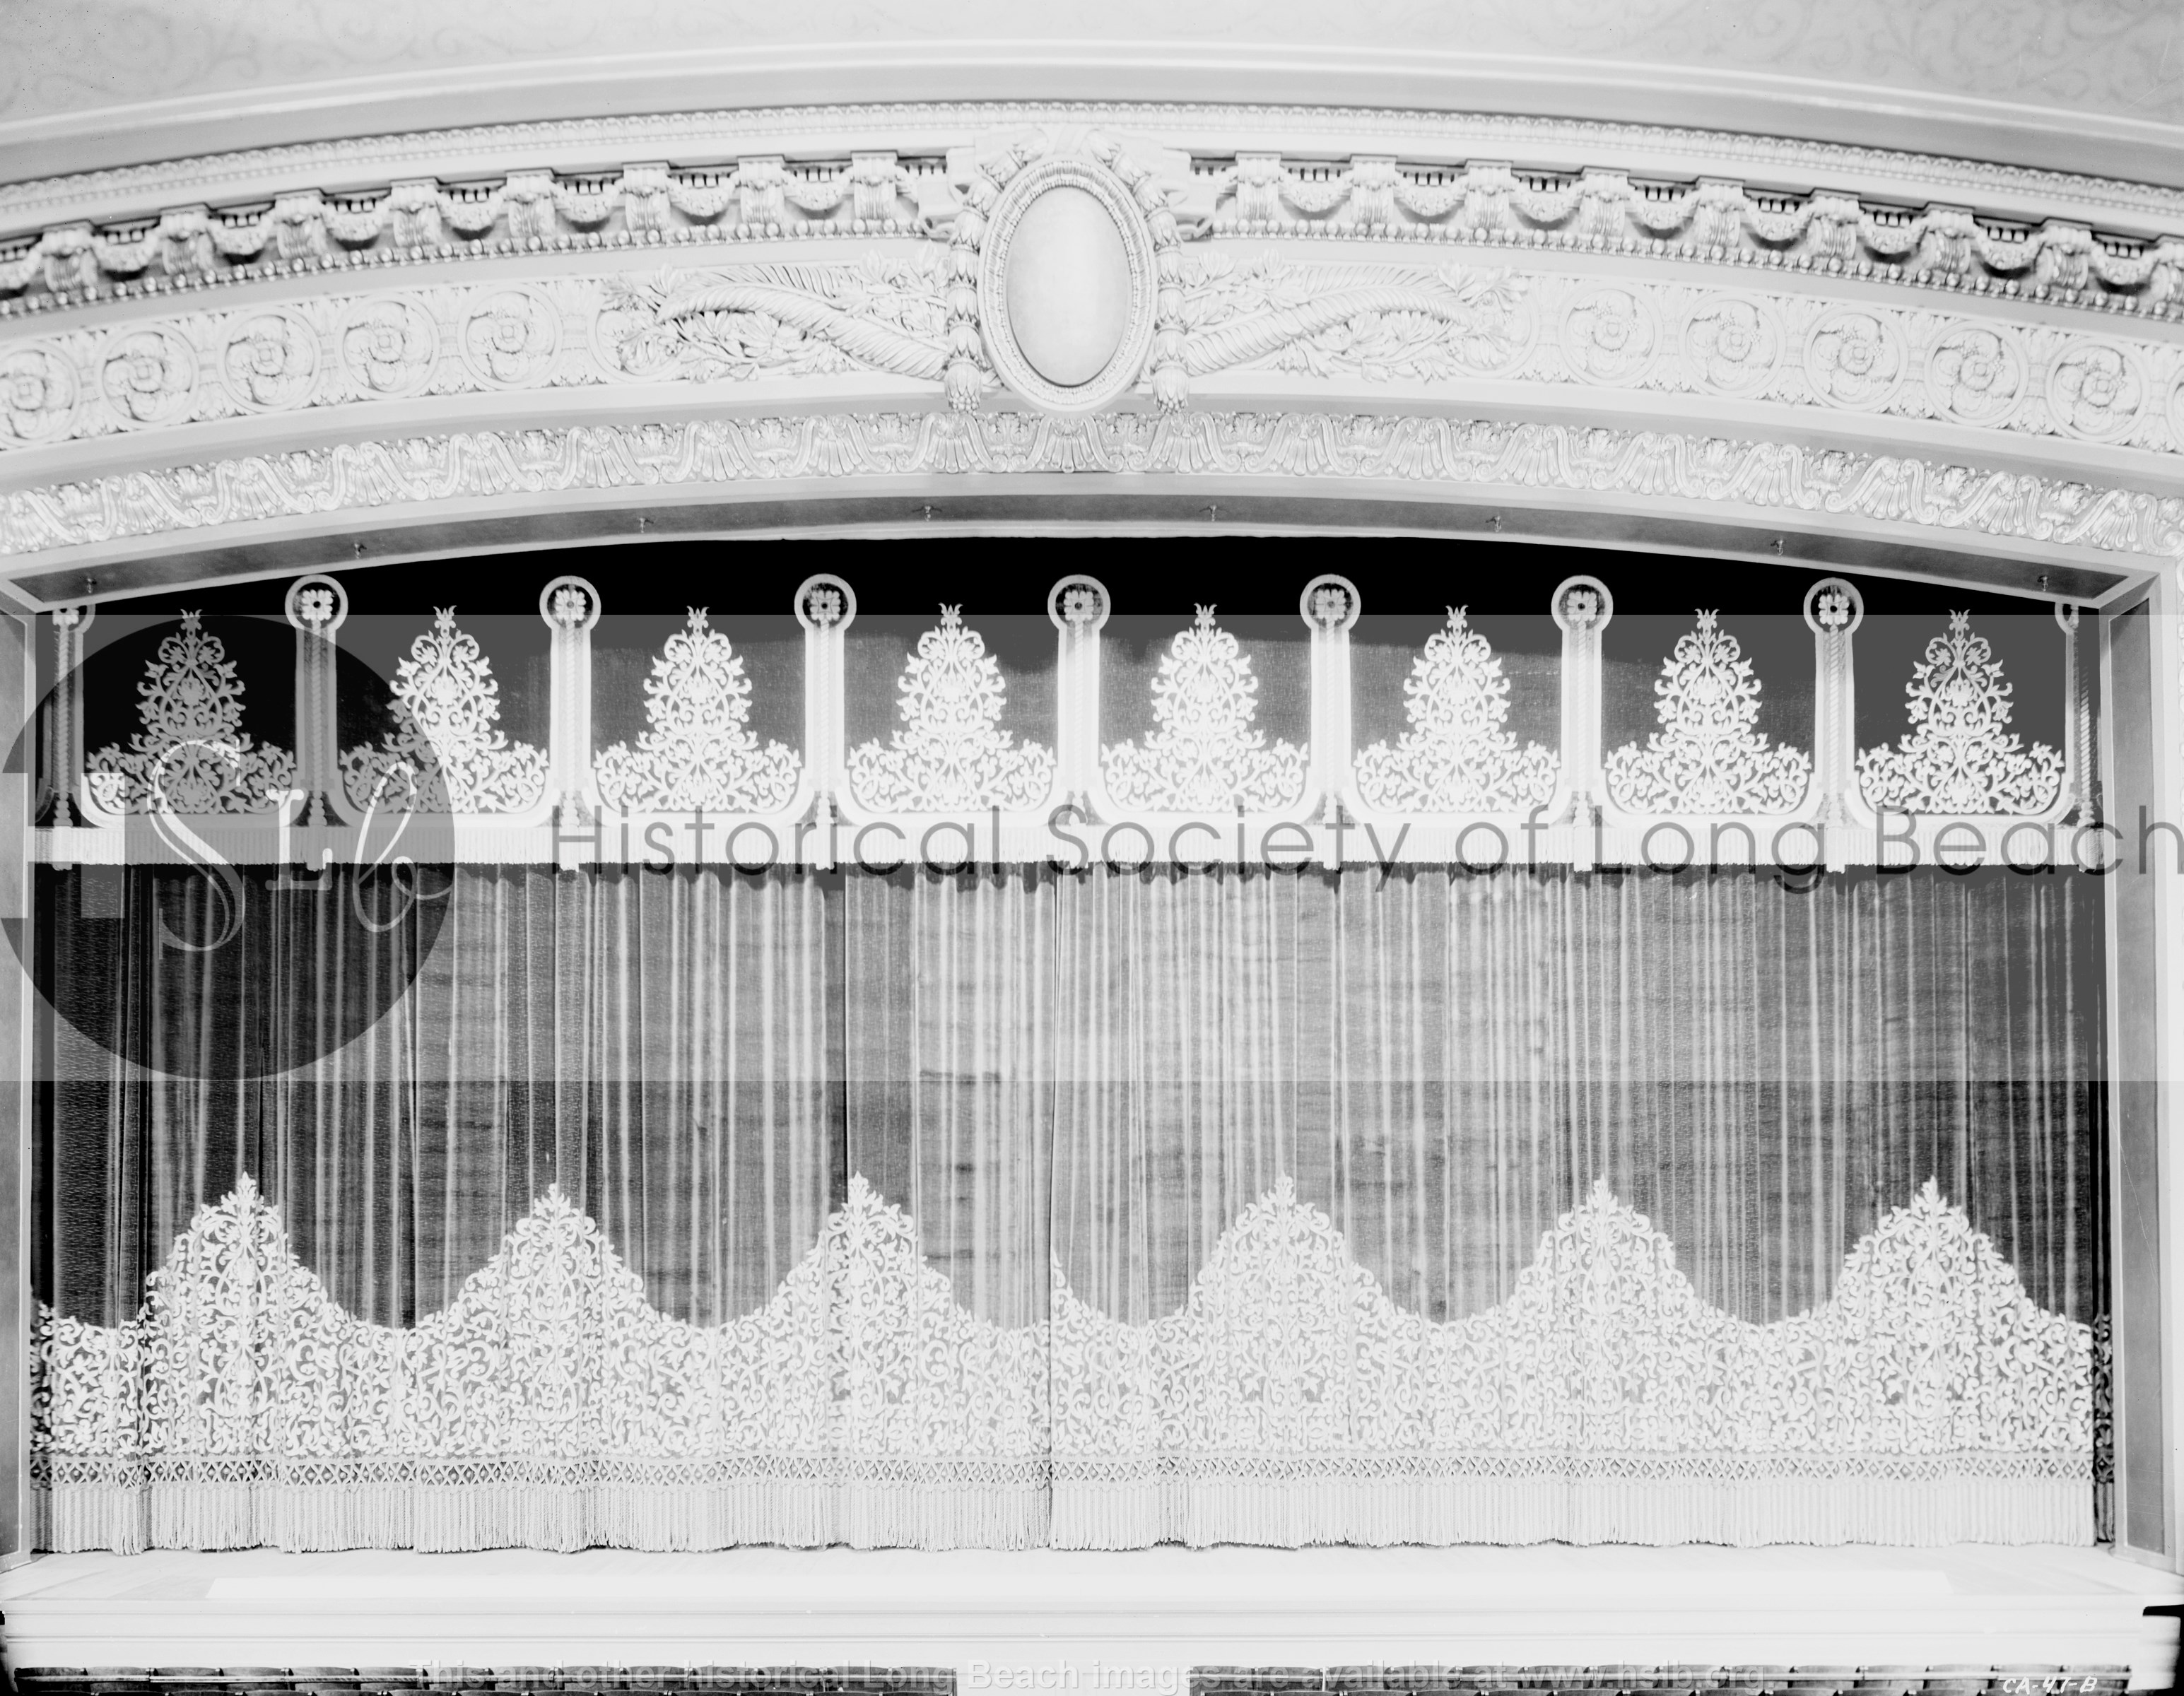 Municipal Auditorium curtains, 1932